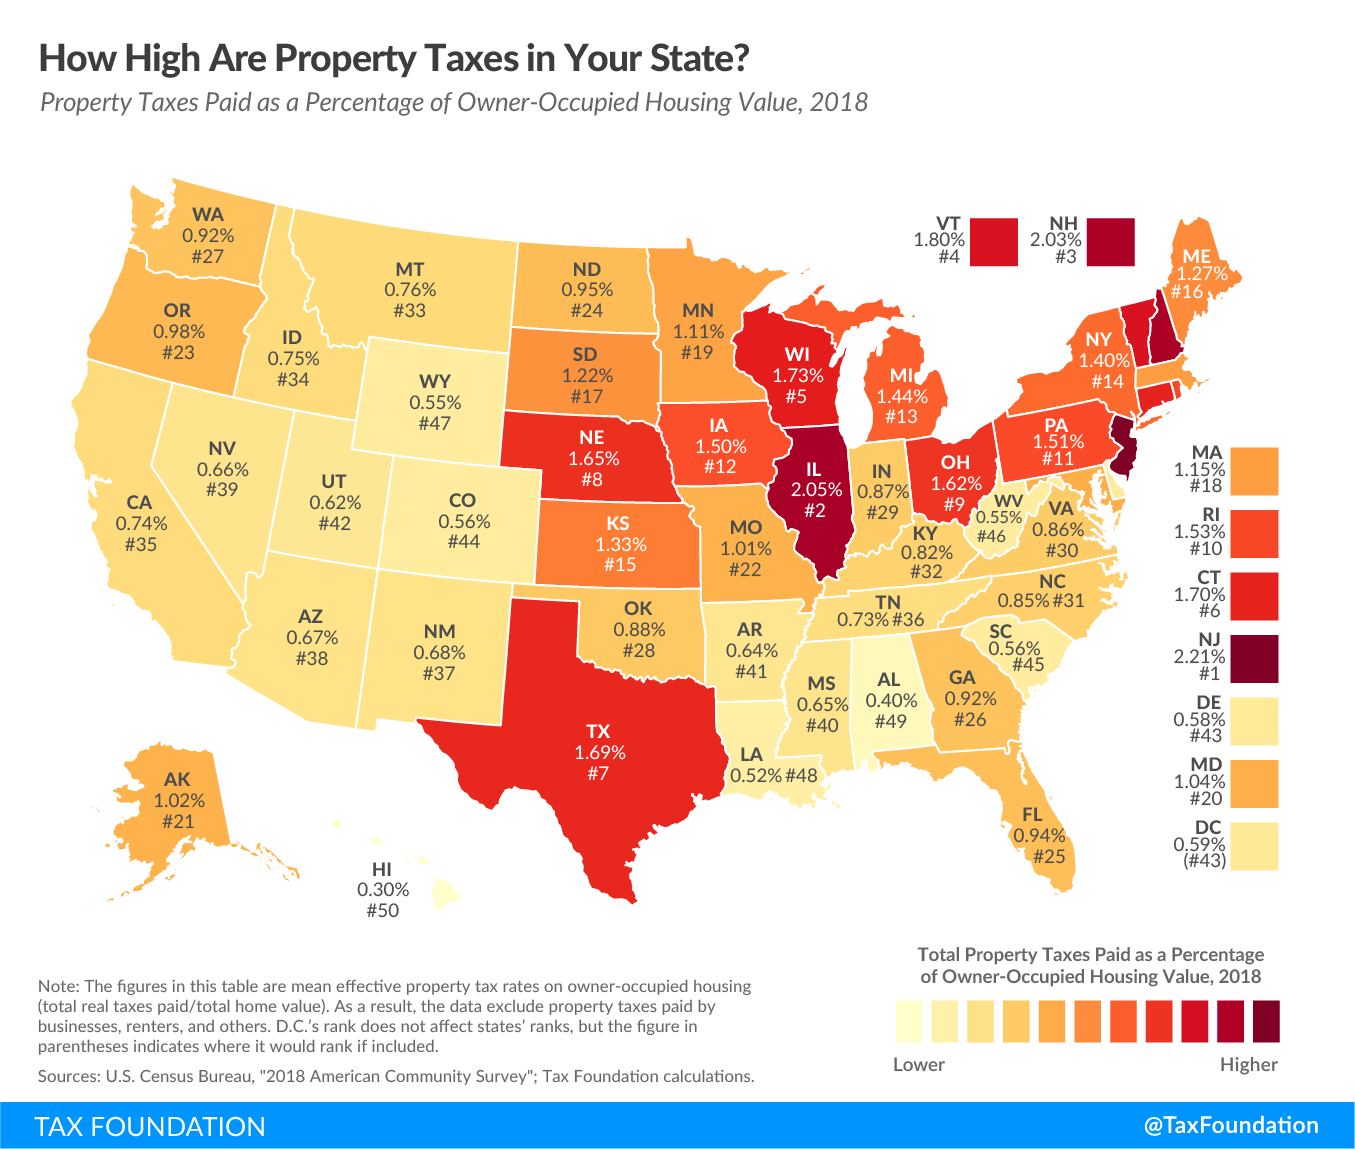 How high are property taxes in my state? How high are property taxes in your state? state property taxes paid as a percentage of owner-occupied housing value